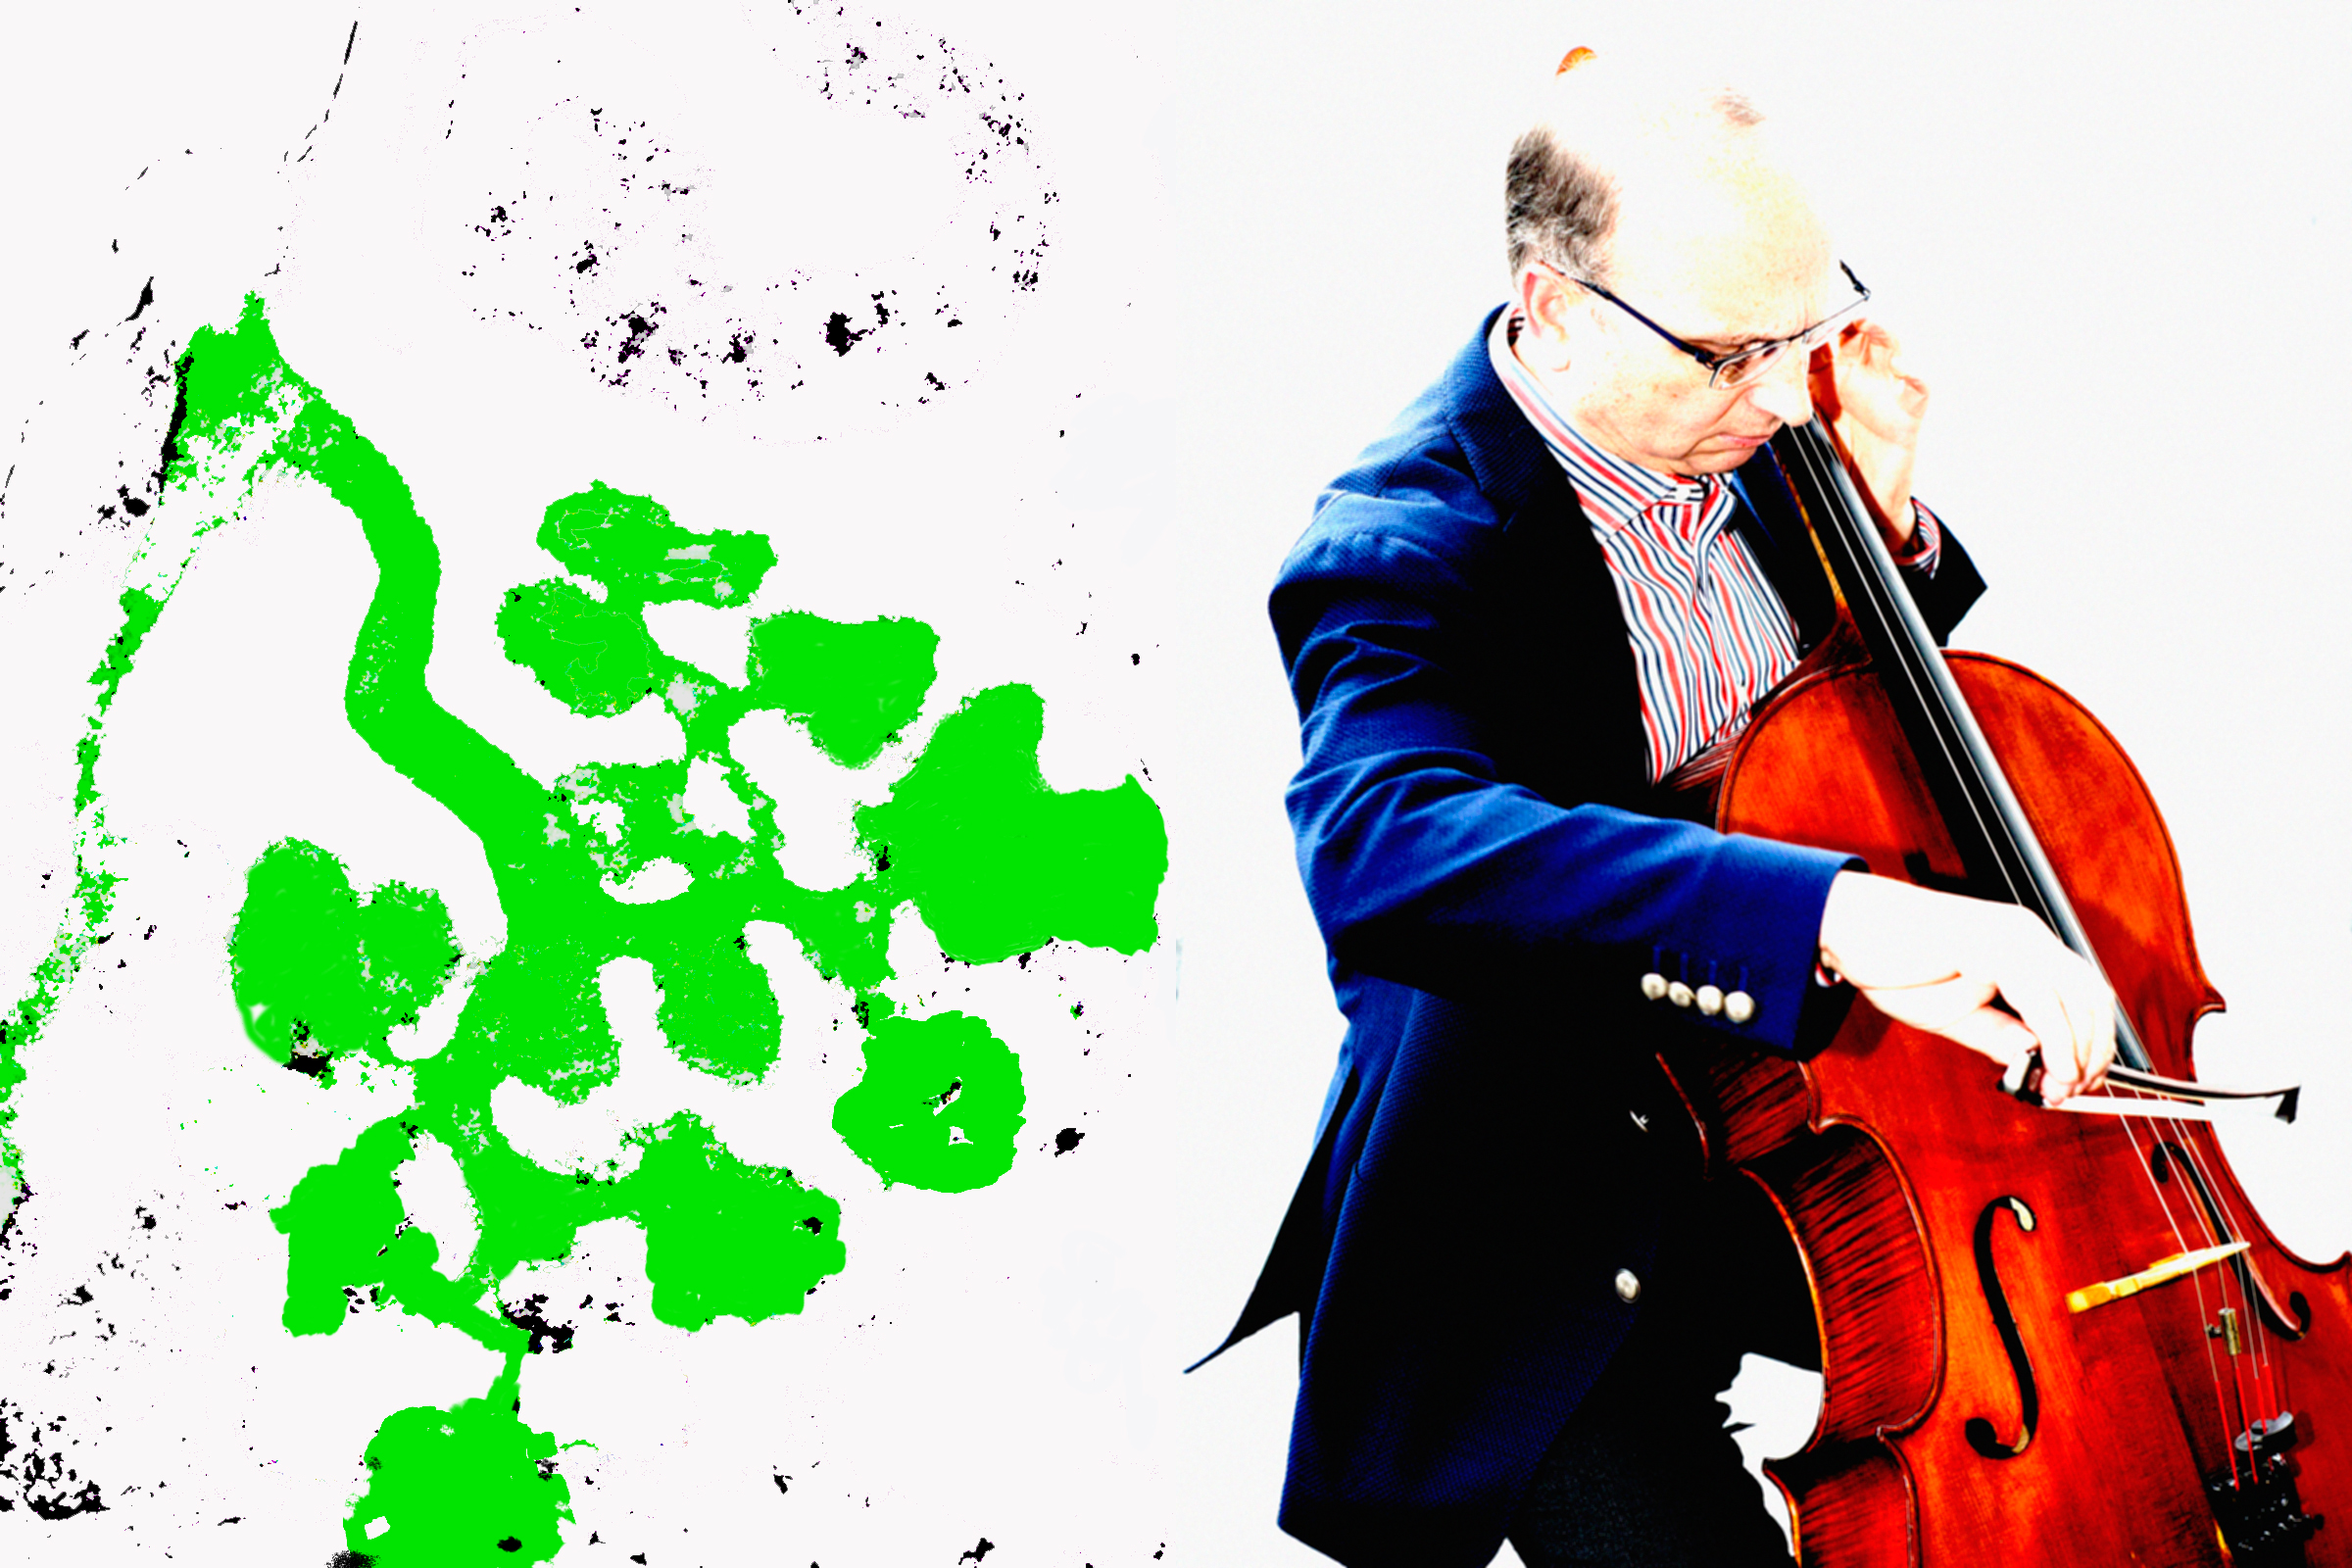 Rosenblum lab landing page image with Dr. Rosenblum playing Cello and a section of kidney explant